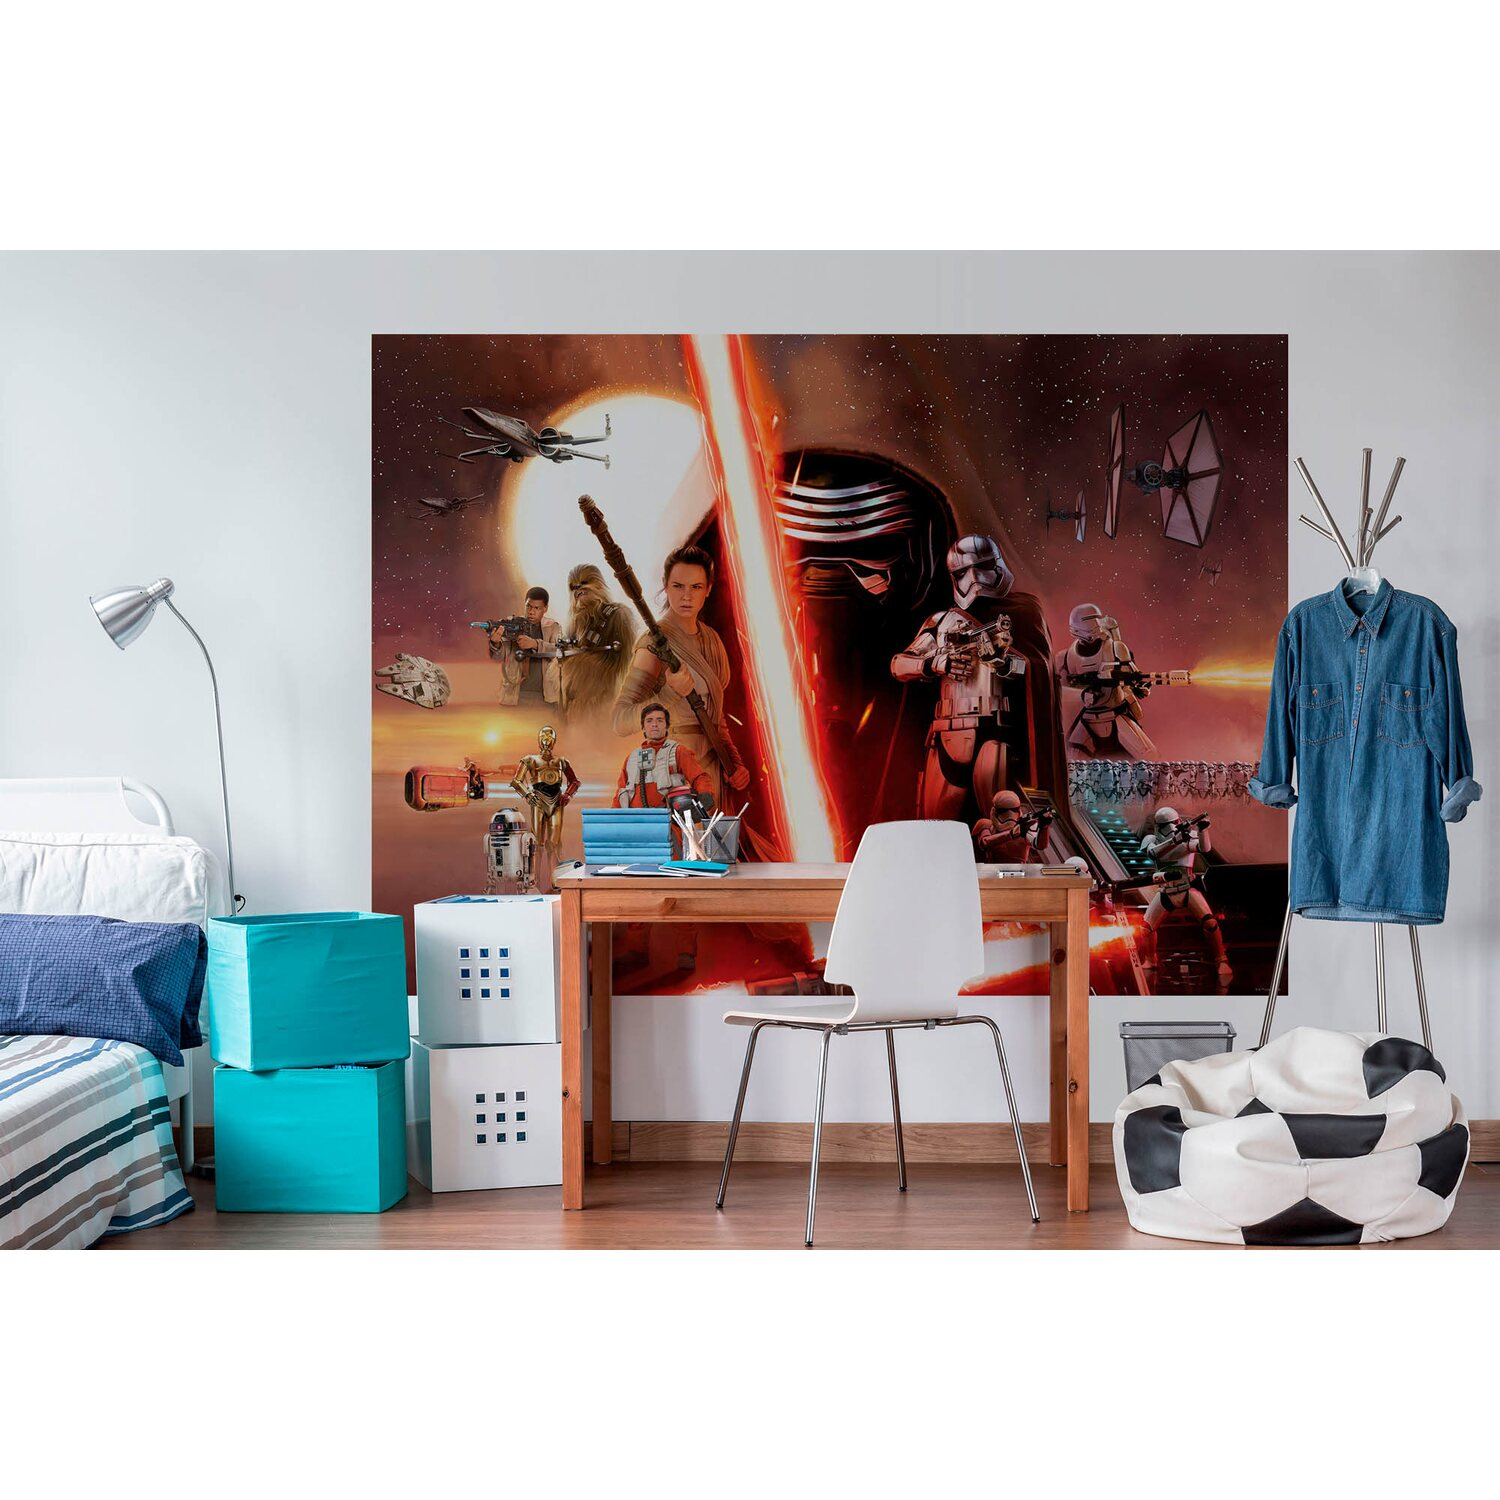 fototapete star wars force awakens 254 cm x 184 cm kaufen bei obi. Black Bedroom Furniture Sets. Home Design Ideas